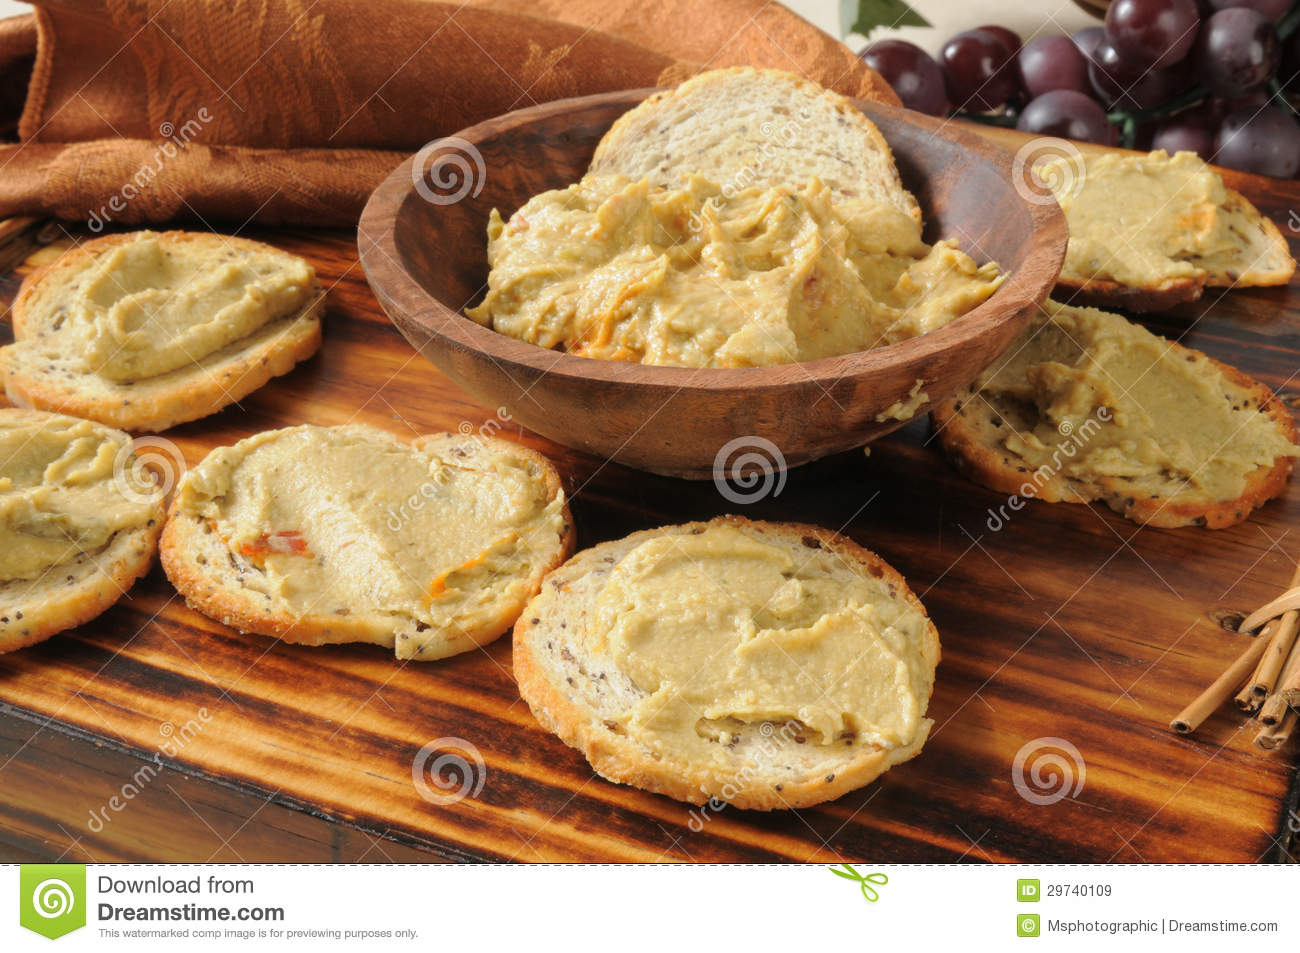 Spinach Artichoke Hummus Royalty Free Stock Images - Image: 29740109